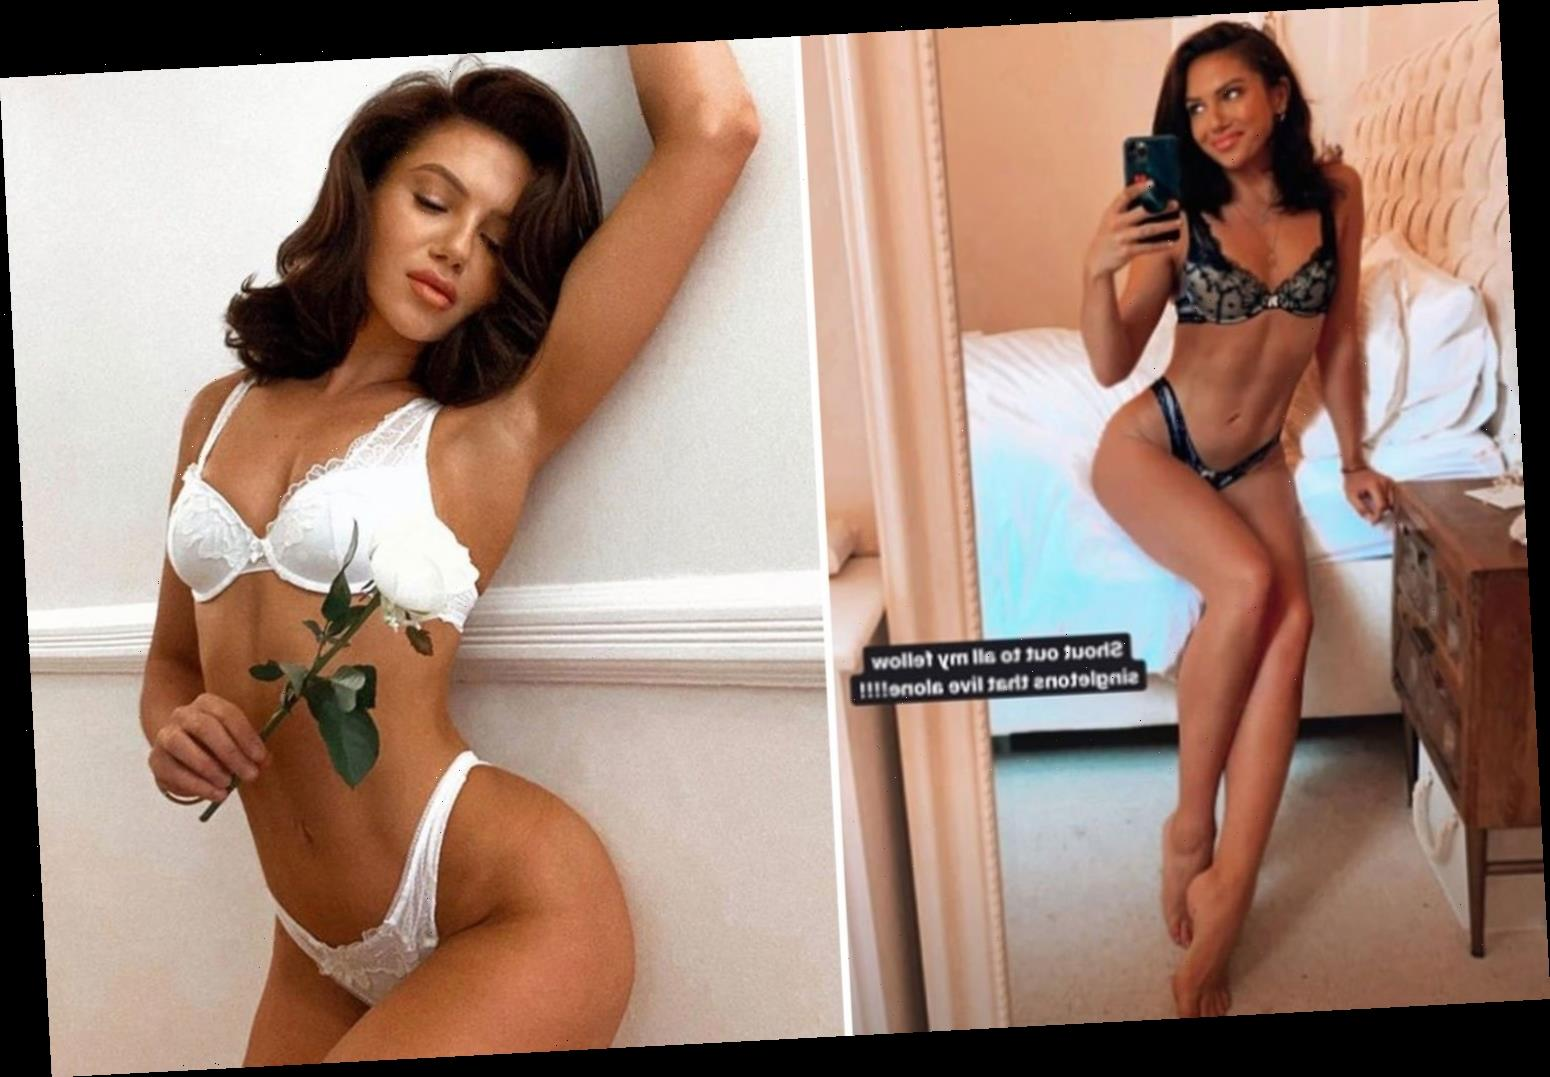 Love Island's Alexandra Cane models black lacy lingerie as she complains about government 'sex ban' – The Sun